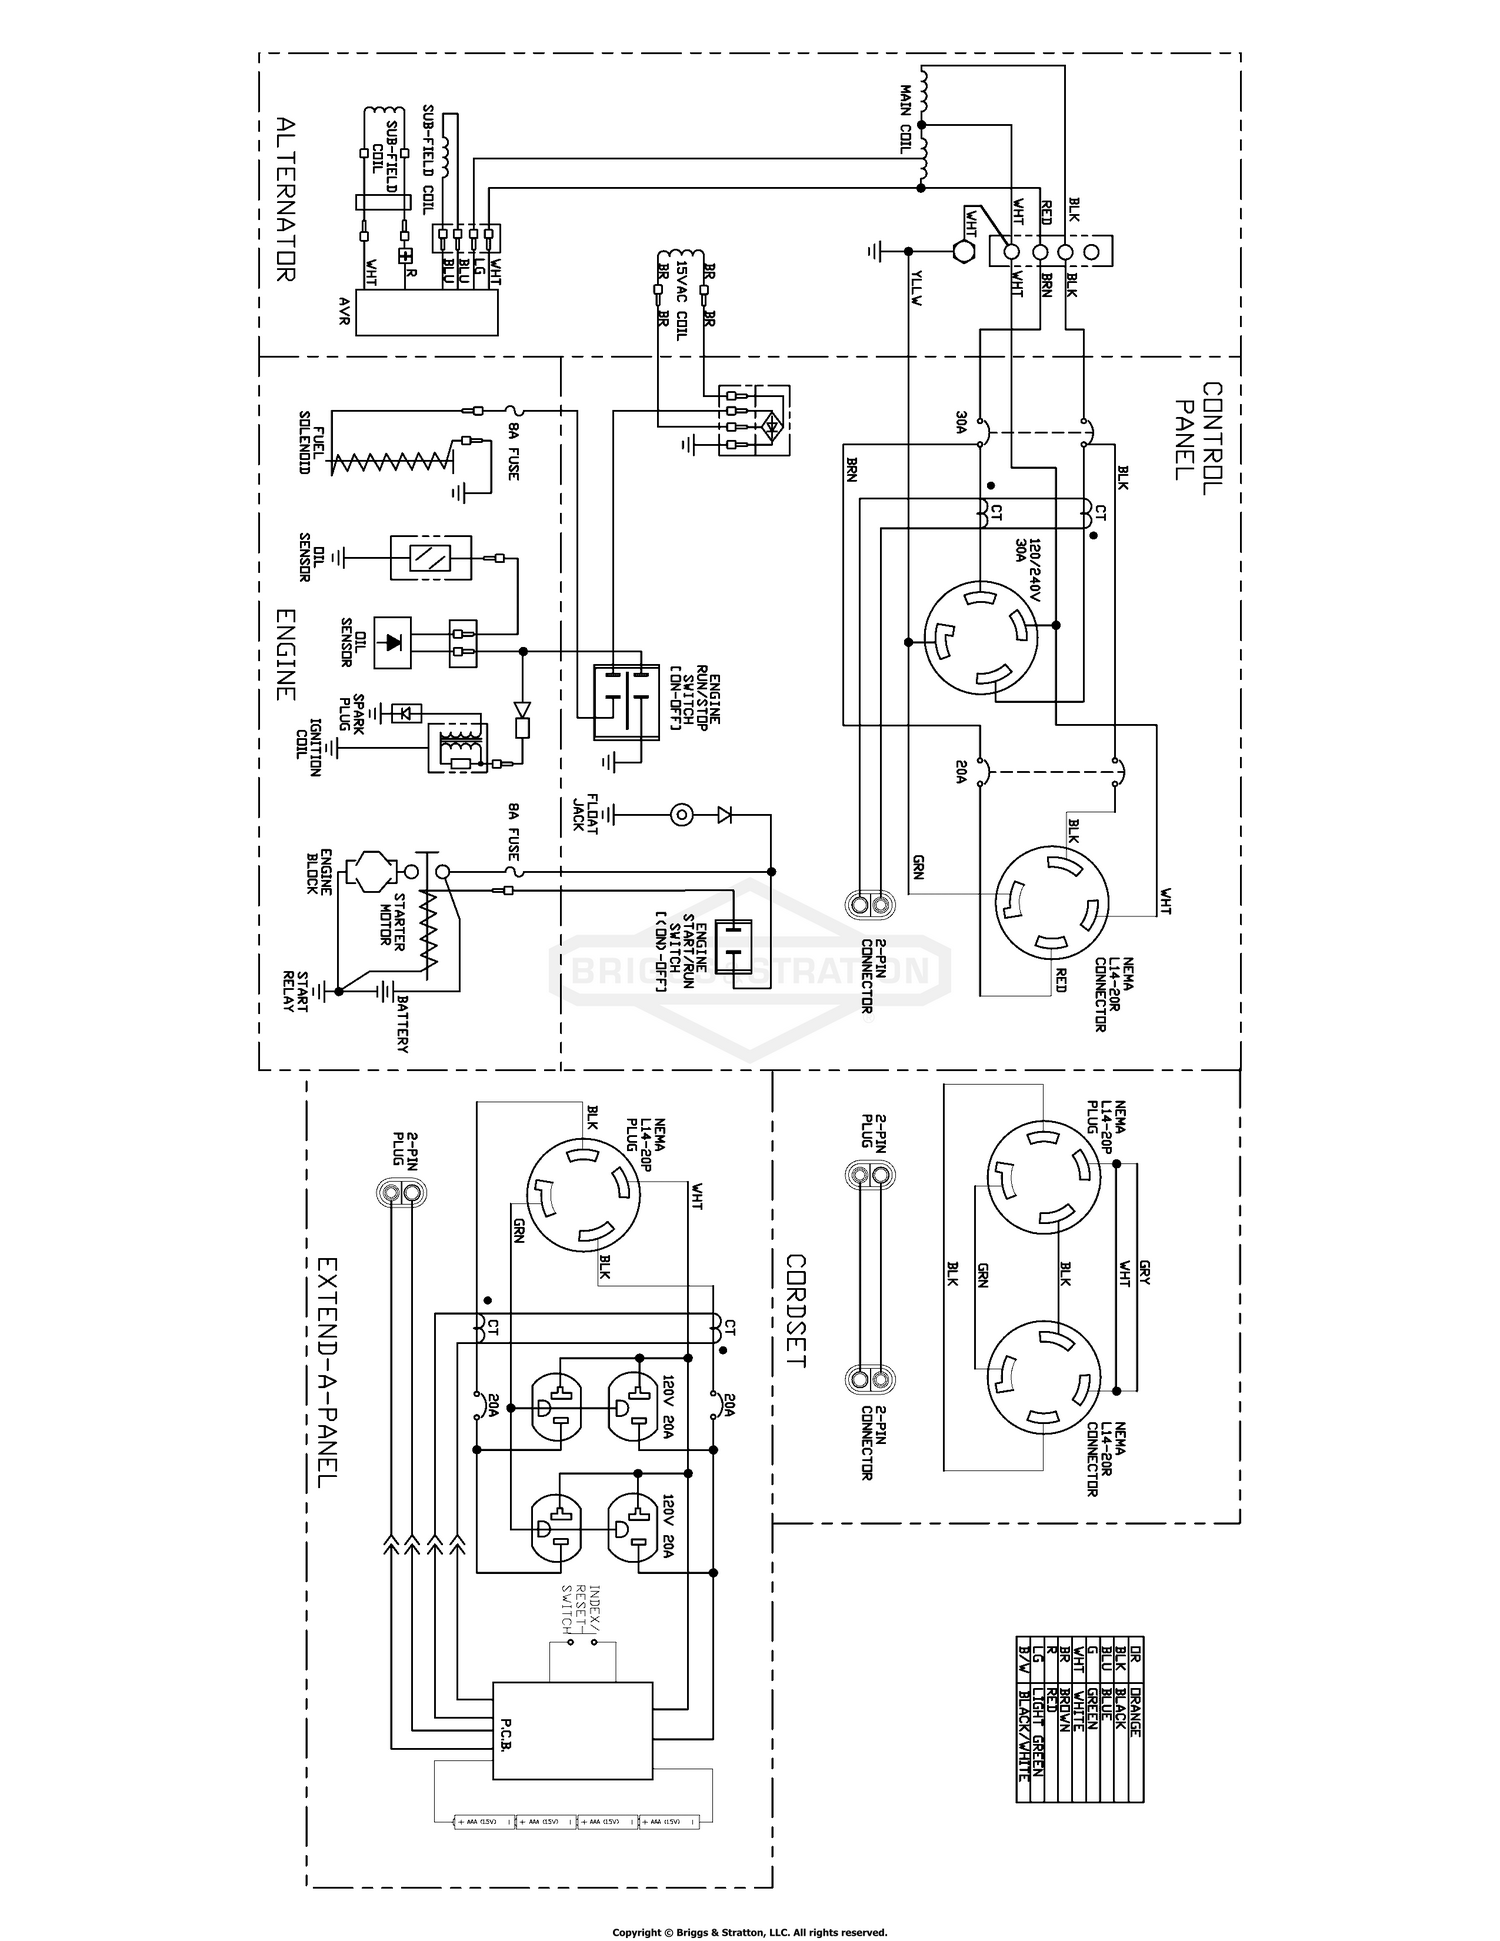 Wiring Diagram (311746WD)